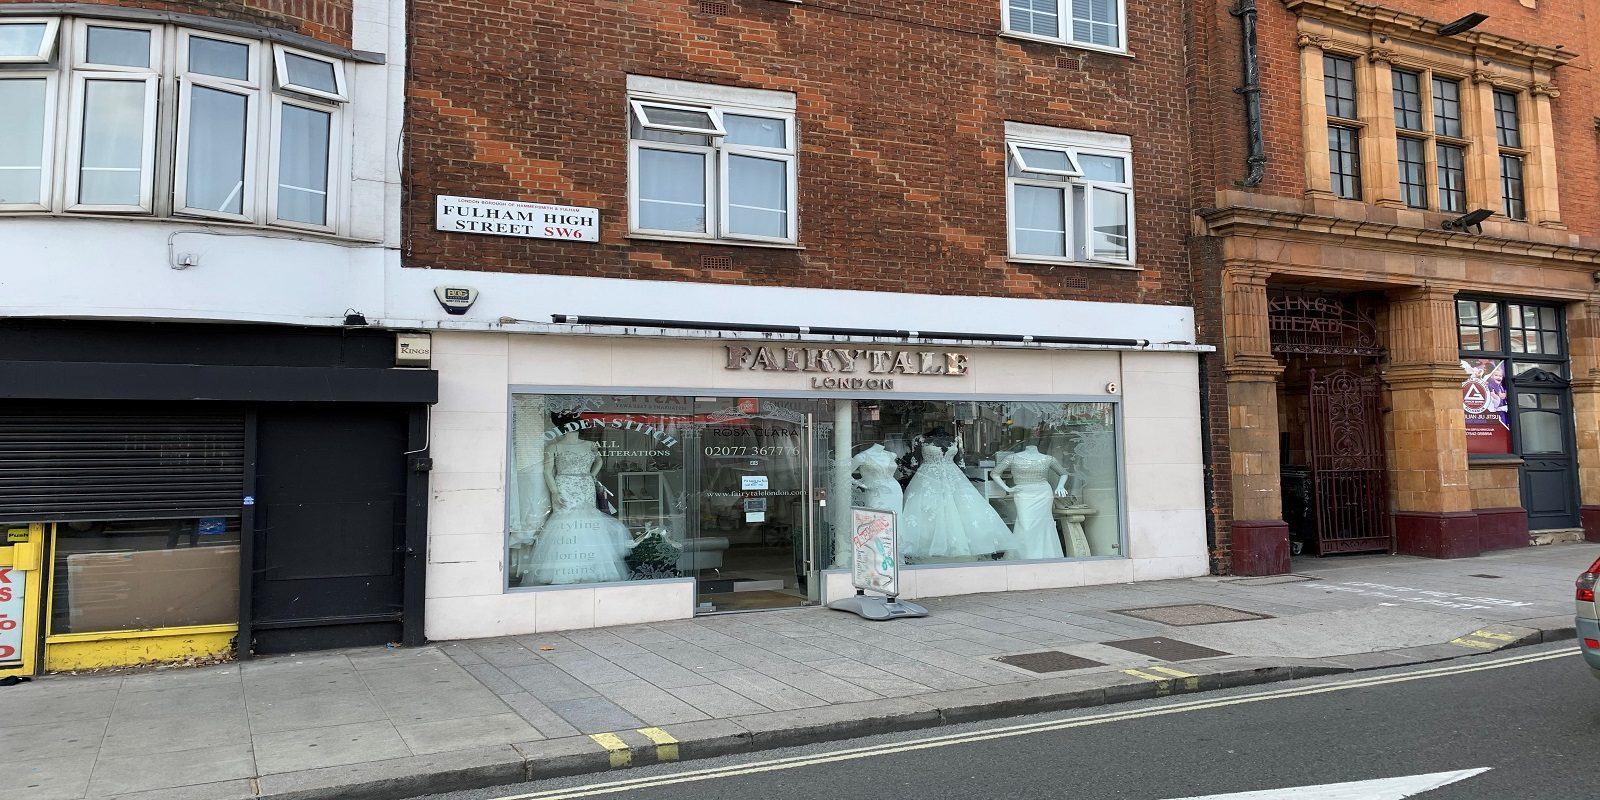 PRIME LOCATION SHOP FOR SALE IN FULHAM